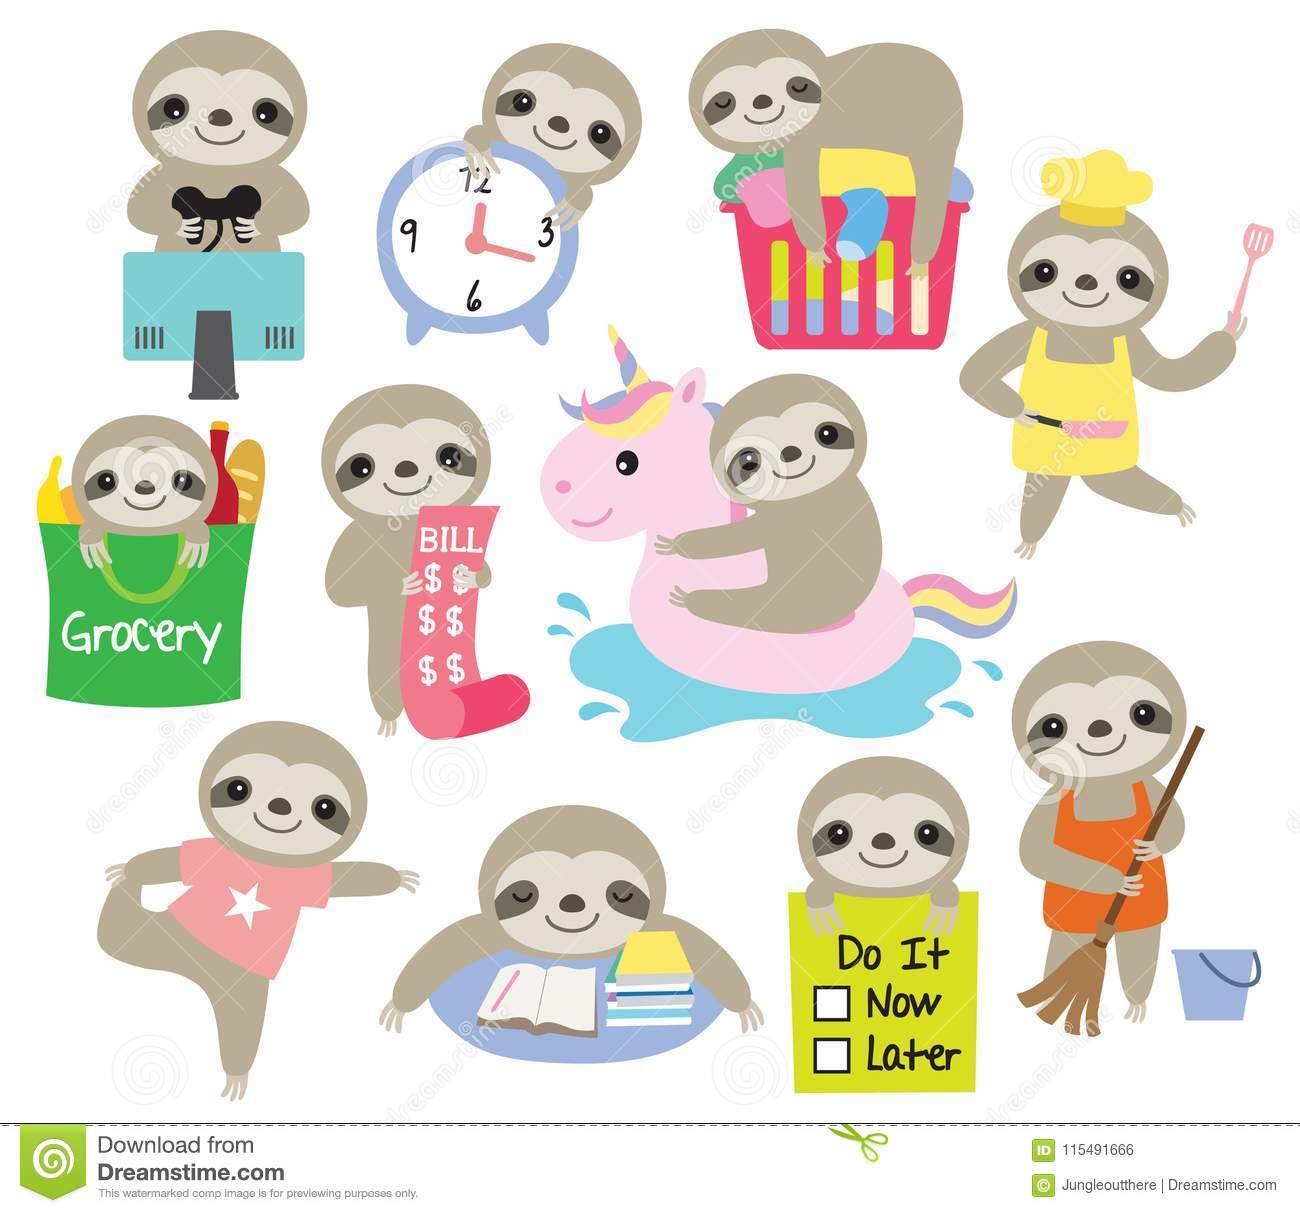 Cute Sloth Daily Activity Planner Vector Illustration